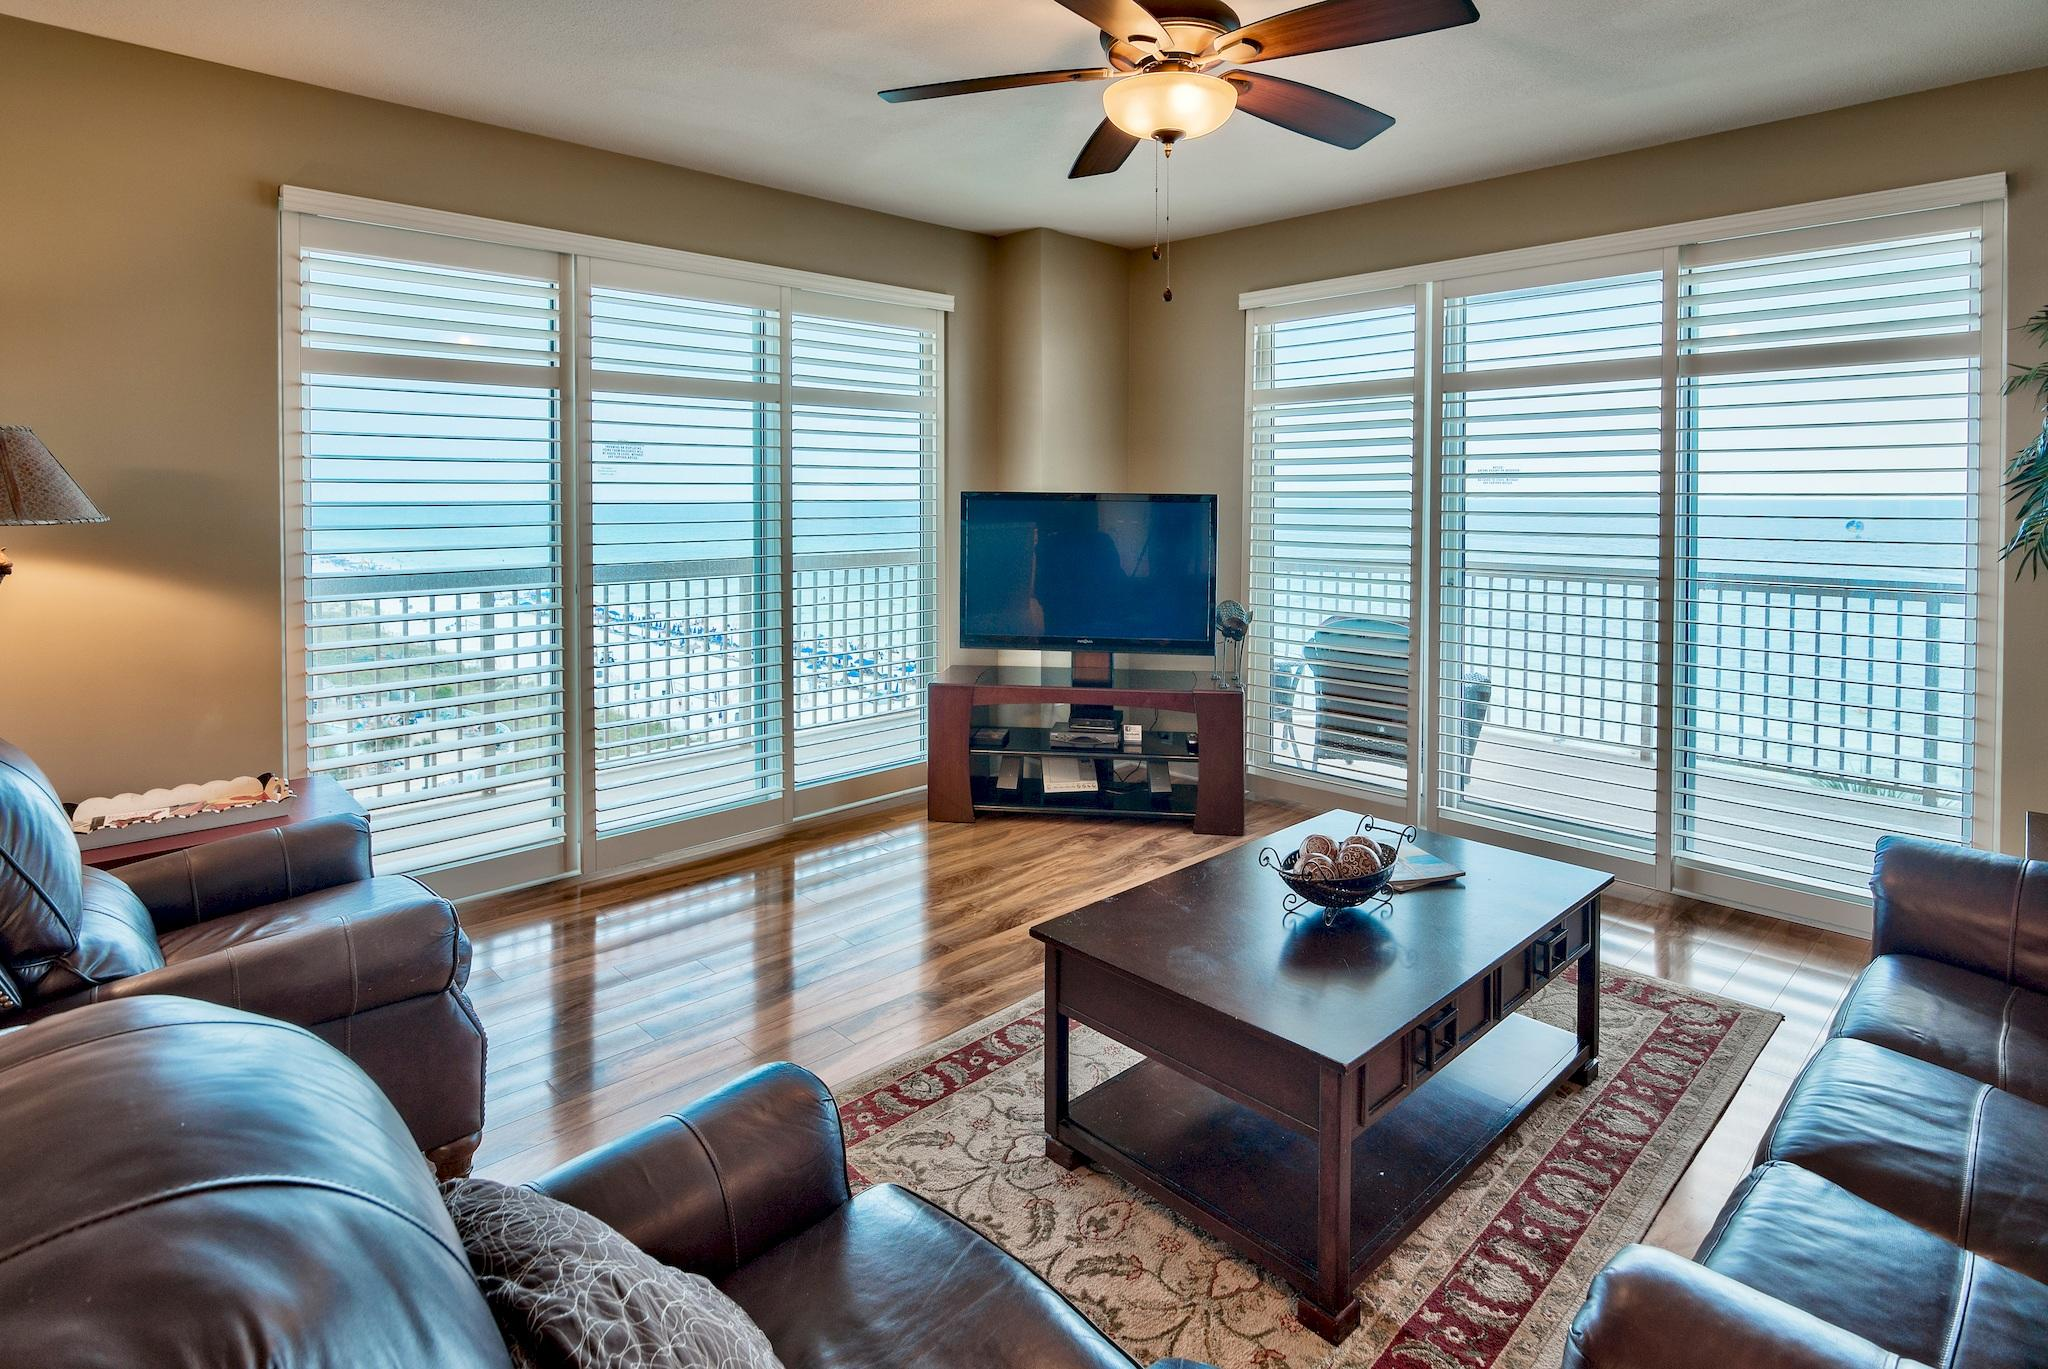 Phenomenal opportunity to own a 3-bedroom, 3-bath East end corner unit! The corner units rarely come on the market and this will not last long. Large windows & doors surround the unit bringing in great natural light and stunning views of the Gulf of Mexico. The spacious wraparound balcony is accessed from the living area or master bedroom and is the perfect place to relax, entertain or enjoy outdoor dining. Enjoy views of the Gulf of Mexico, shimmering white sand beaches and the expansive pool area. Exquisite details and features abound in this breathtaking unit. Interior details include an open floor plan, custom plantation shutters throughout, beautiful wood floors and stylish decor. This luxury unit is being sold fully furnished & decorated and is a prime turn key investment! There is a great formal dining area with views of the Gulf and an open kitchen with granite countertops, tile floors, and ample cabinets. The granite breakfast bar is perfect for casual dining. The Gulf front master bedroom is separate from the other two bedrooms for added privacy. The room is very spacious with direct baloney access, custom plantation shutters, walk-in closet and en-sutie bathroom. Enjoy your morning cup of coffee on the balcony while taking in the views. The en-suite bathroom offers tile floors, double vanity, soaking tub to unwind in and a separate walk-in shower. There are two guest bedrooms - one with Gulf views and an en-suite bathroom and the additional guest bedroom has a separate bath nearby. There is a laundry room with a full size washer & dryer and storage. This unit is currently a non-rental and well maintained, however, this could easily be an income producing rental unit - projected at nearly $49,000!  Sunrise Beach has luxurious amenities including: 2 elevated Gulf front pools, one heated seasonally, 2 spas, large sun deck, spray park, owners lounge with full kitchen, Gulf front exercise room, theatre, plenty of underground parking, Gulf front gas grills, 330